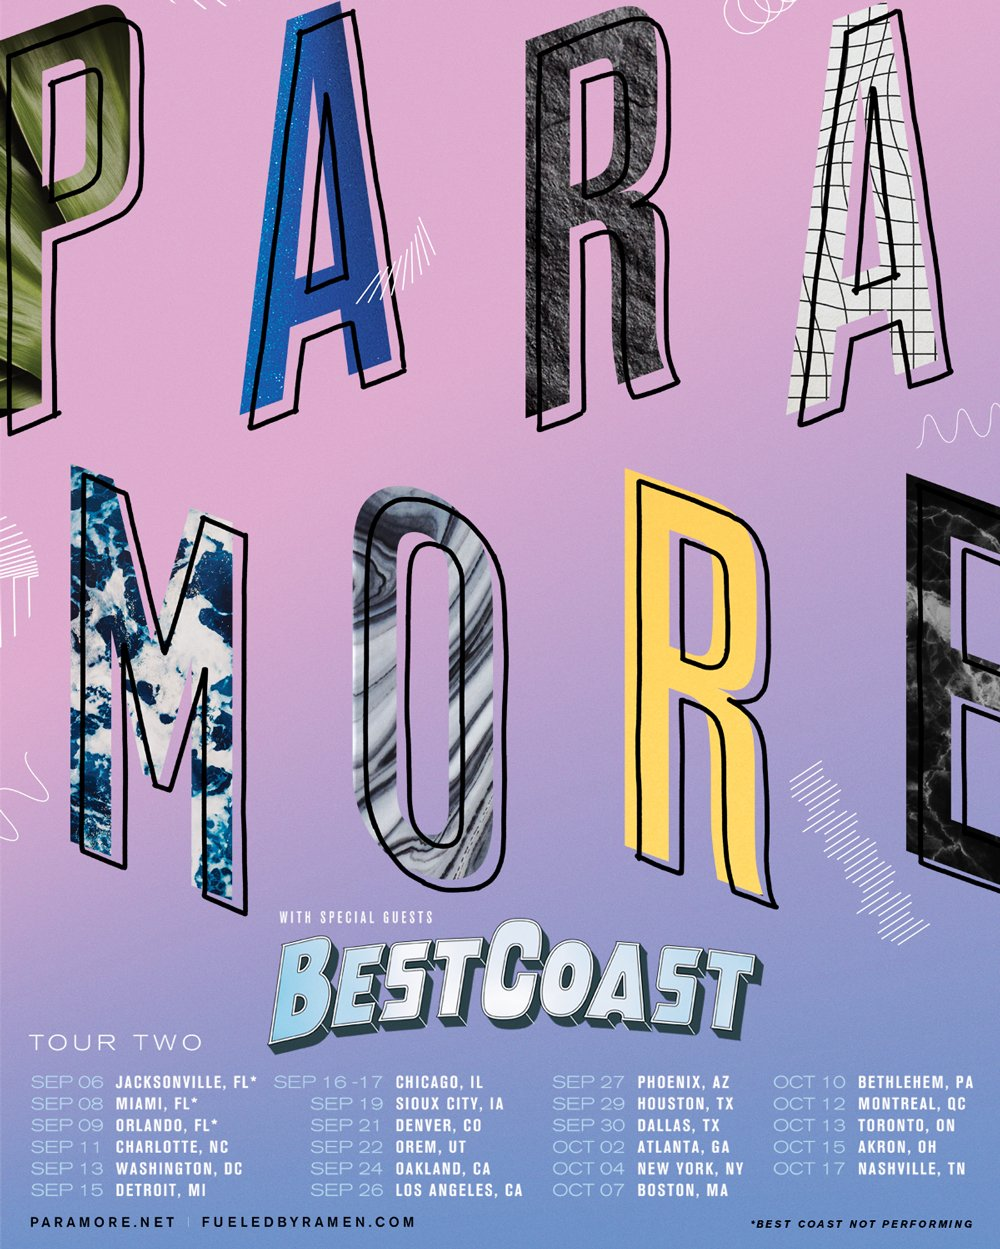 Paramore have announced 'Tour Two', with Best Coast along for the ride